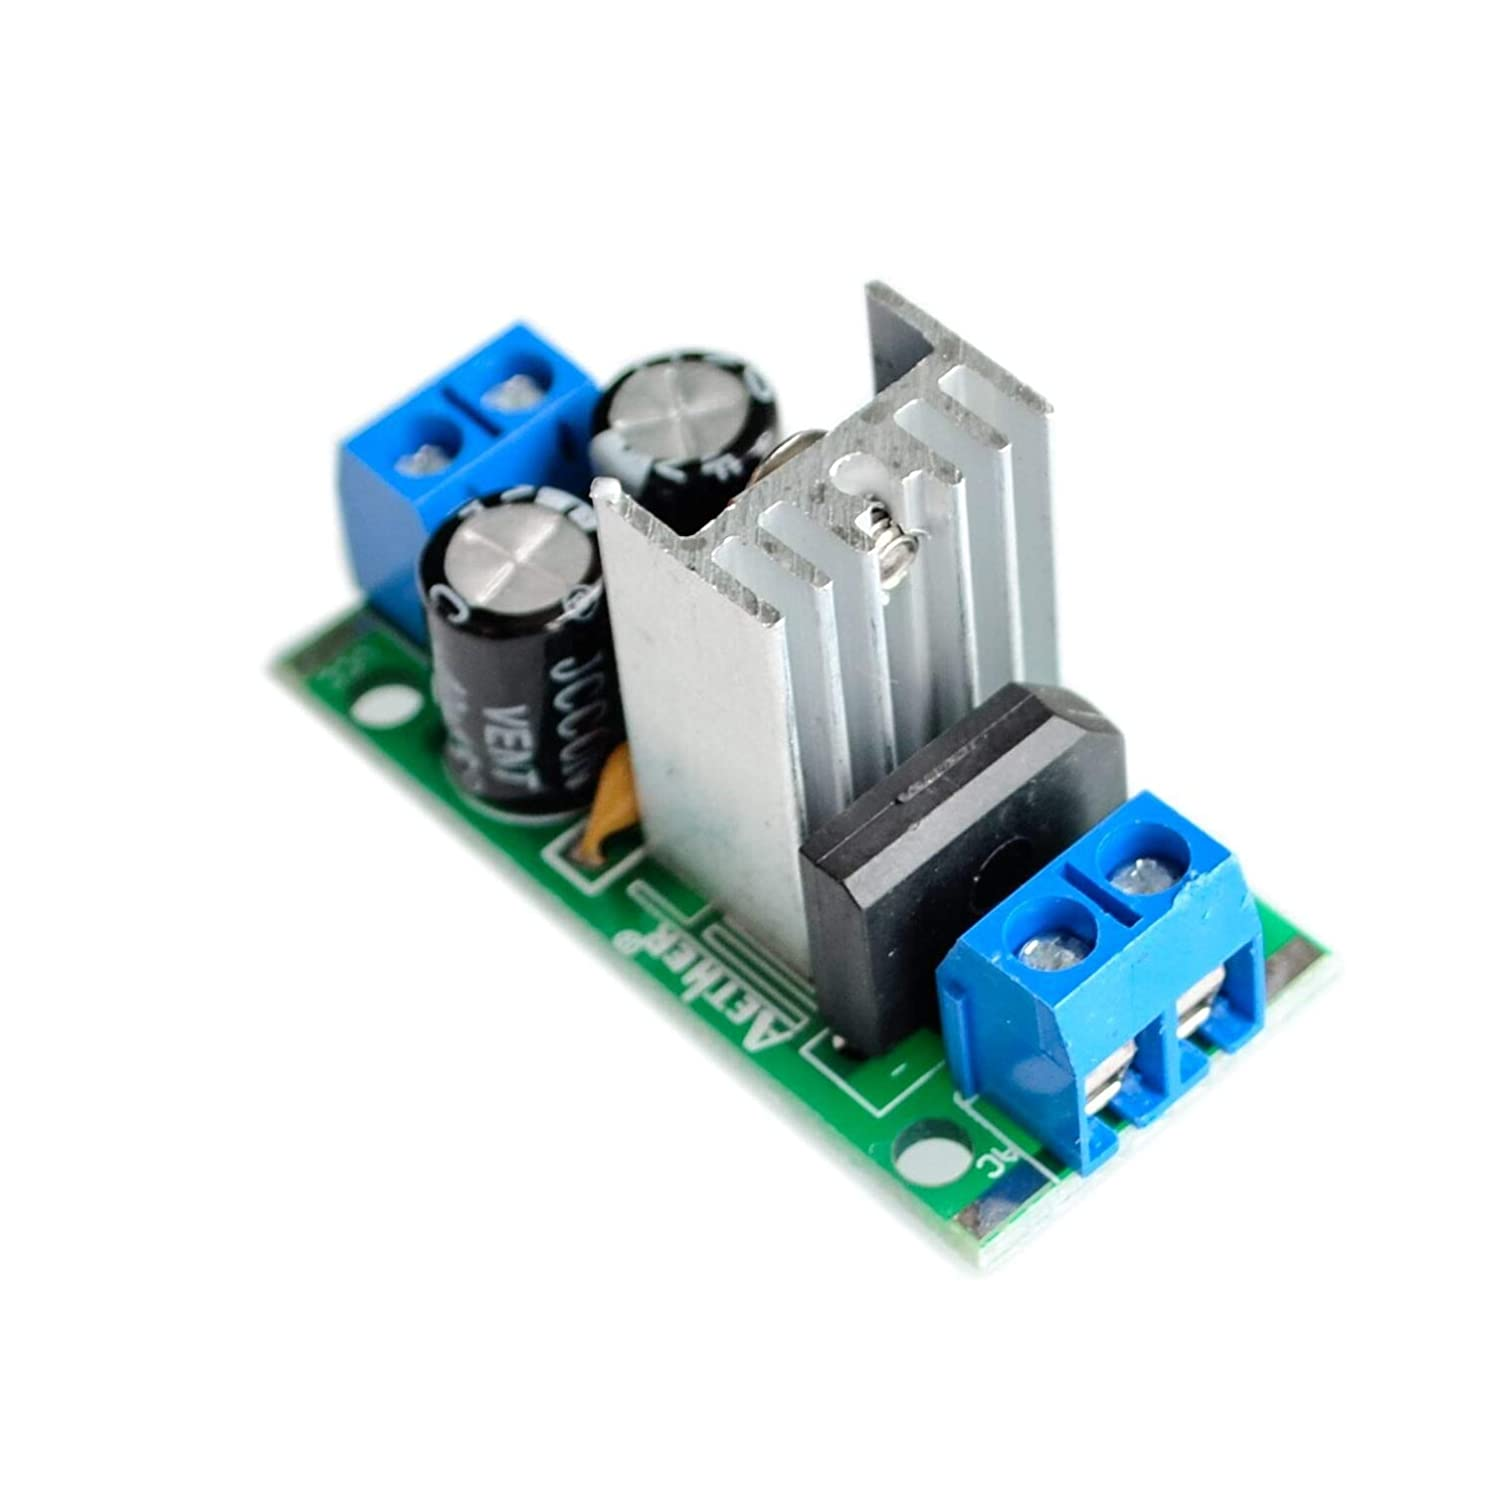 5PCS//LOT Step-down power supply module L7805 voltage regulator filter rectifier module AC output 5V DC 1.5A